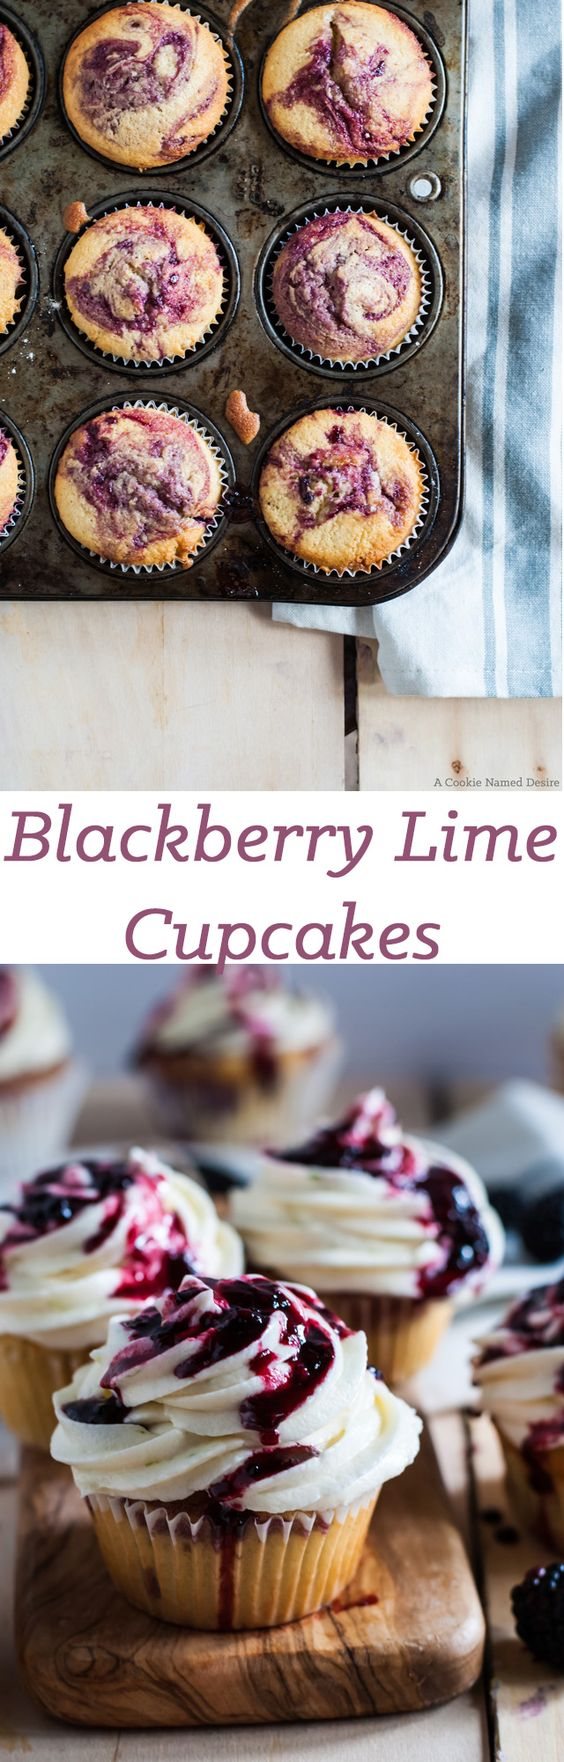 These blackberry lime cupcakes are moist, fluffy, and the perfect summertime treat you will want to keep coming back for more. Bonus: It's easy to make!